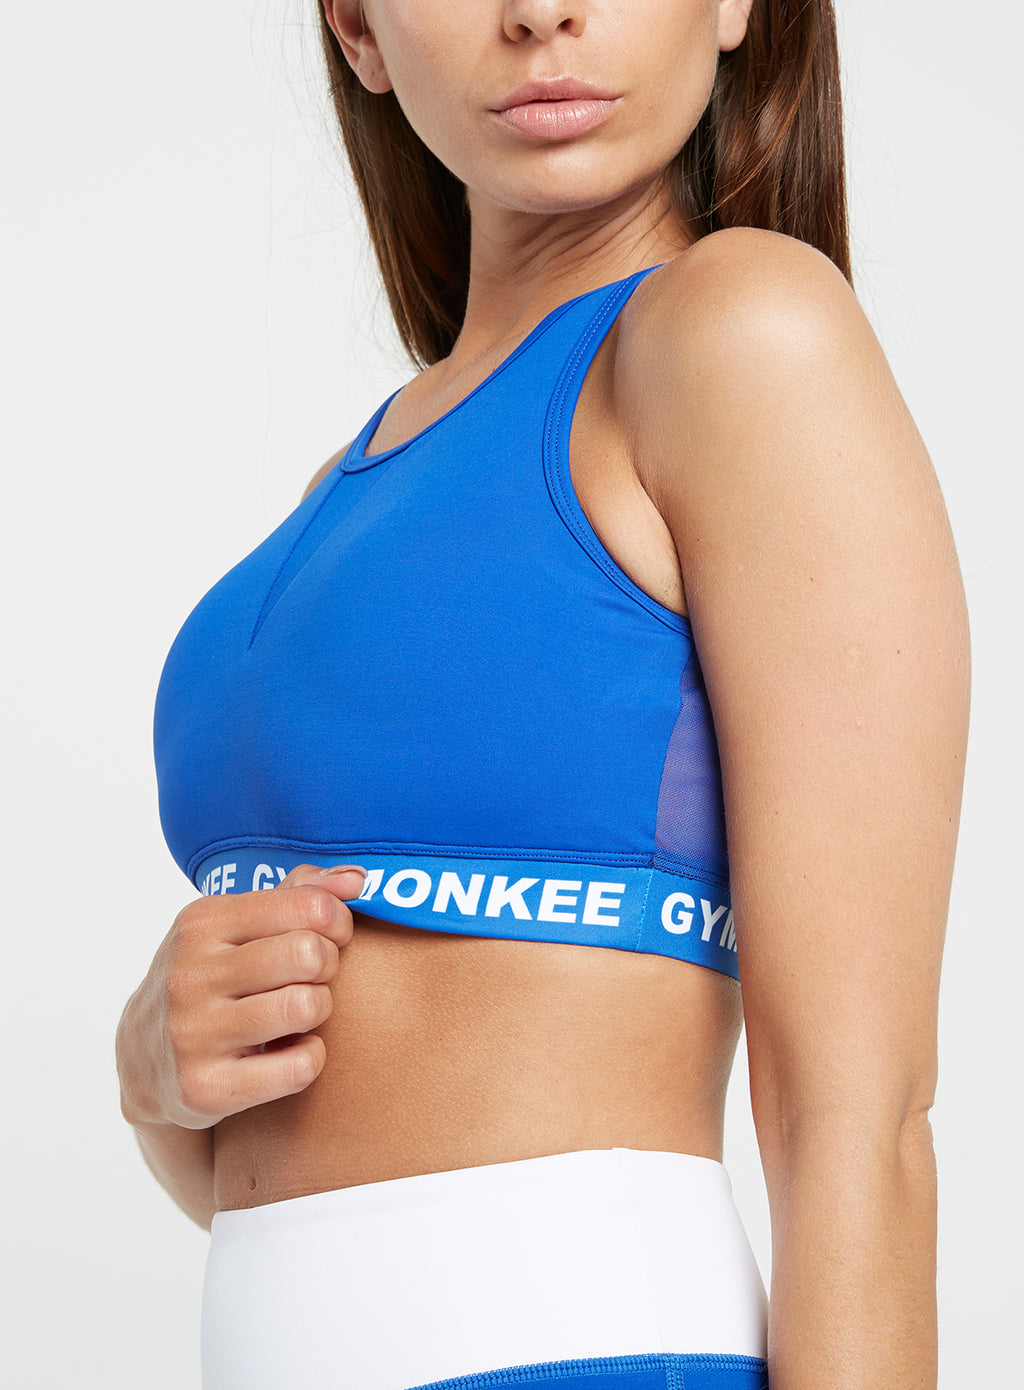 Gym Monkee - Blue Sports Bra FRONT LEFT